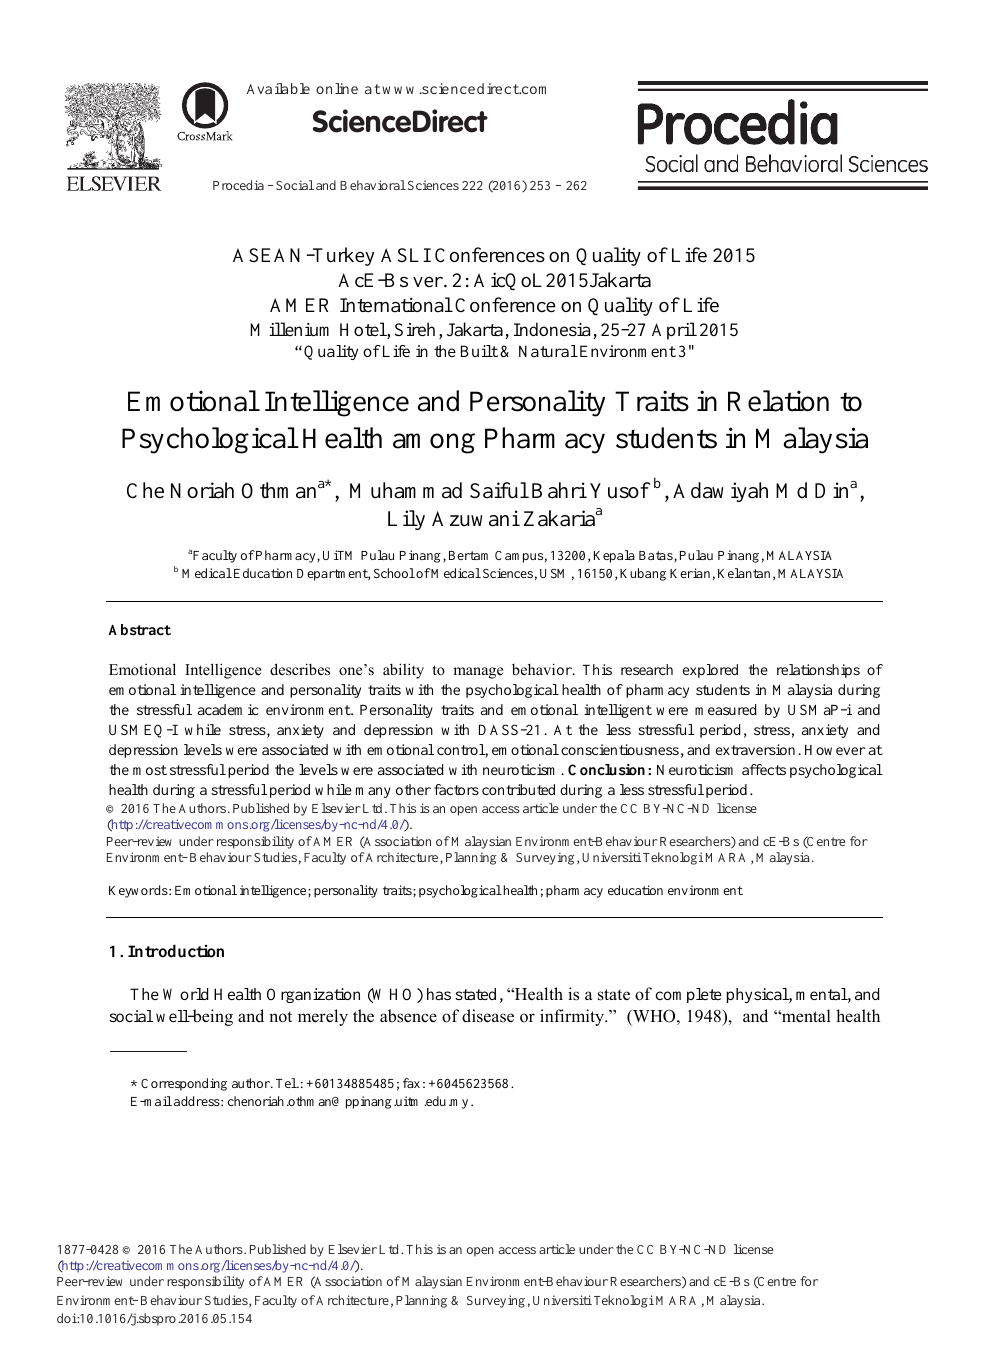 Emotional Intelligence and Personality Traits in Relation to